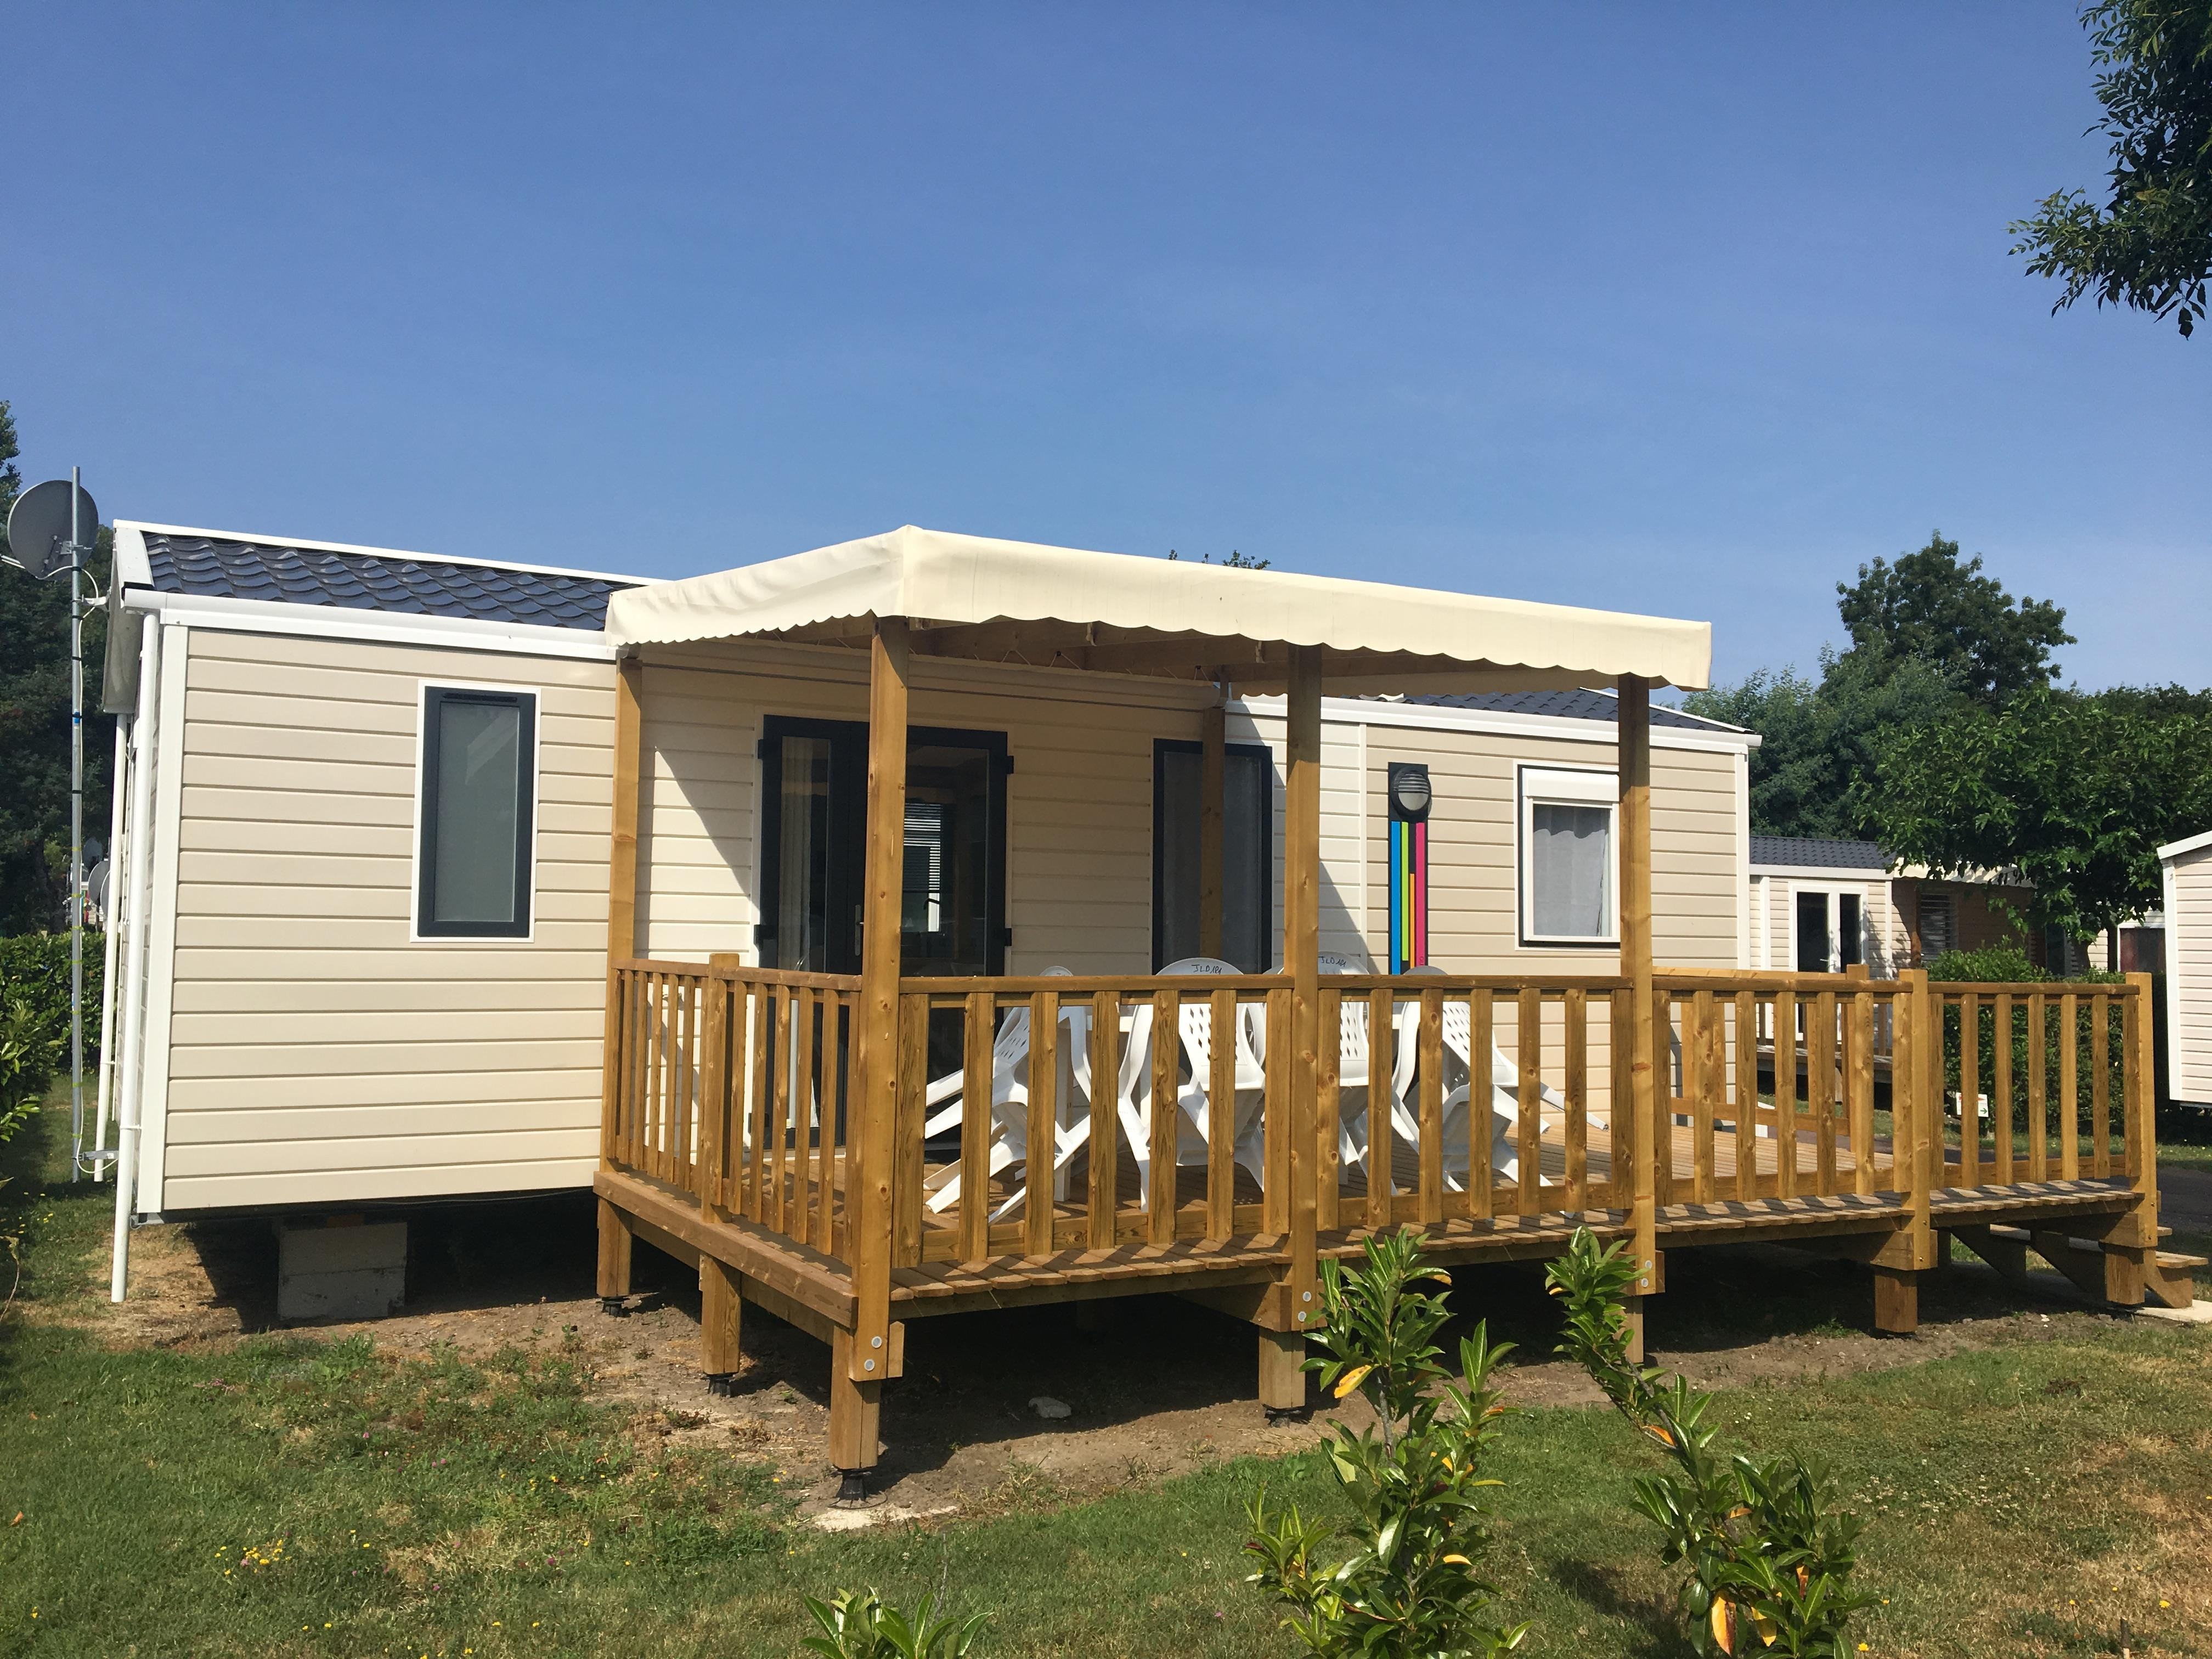 Mobil-home Gamme Confort (3 chambres)